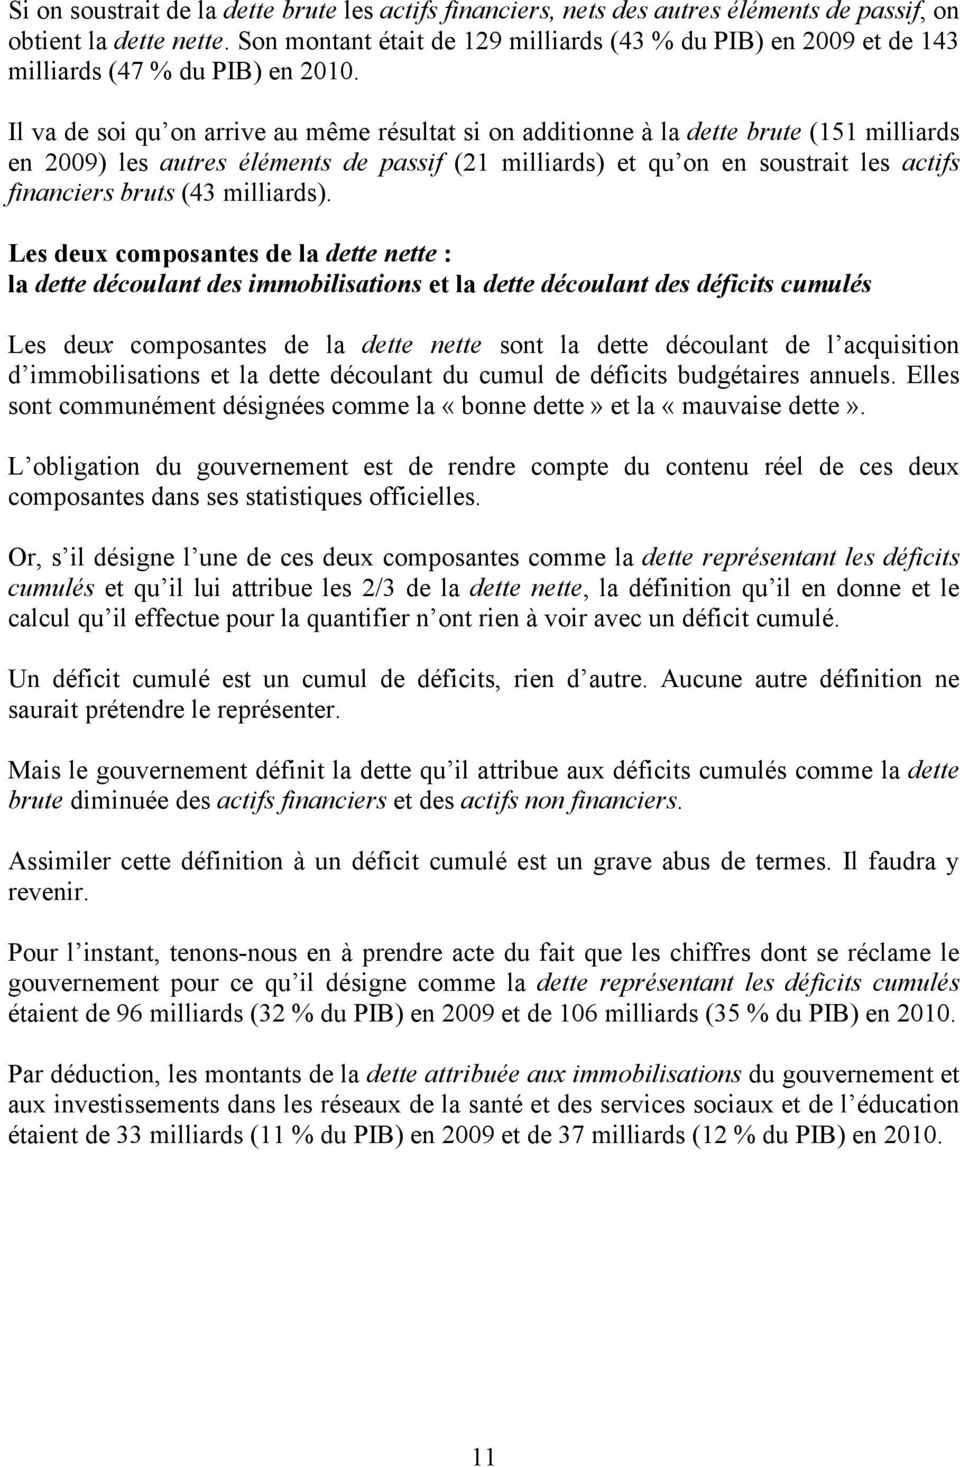 Il va de soi qu on arrive au même résultat si on additionne à la dette brute (151 milliards en 2009) les autres éléments de passif (21 milliards) et qu on en soustrait les actifs financiers bruts (43